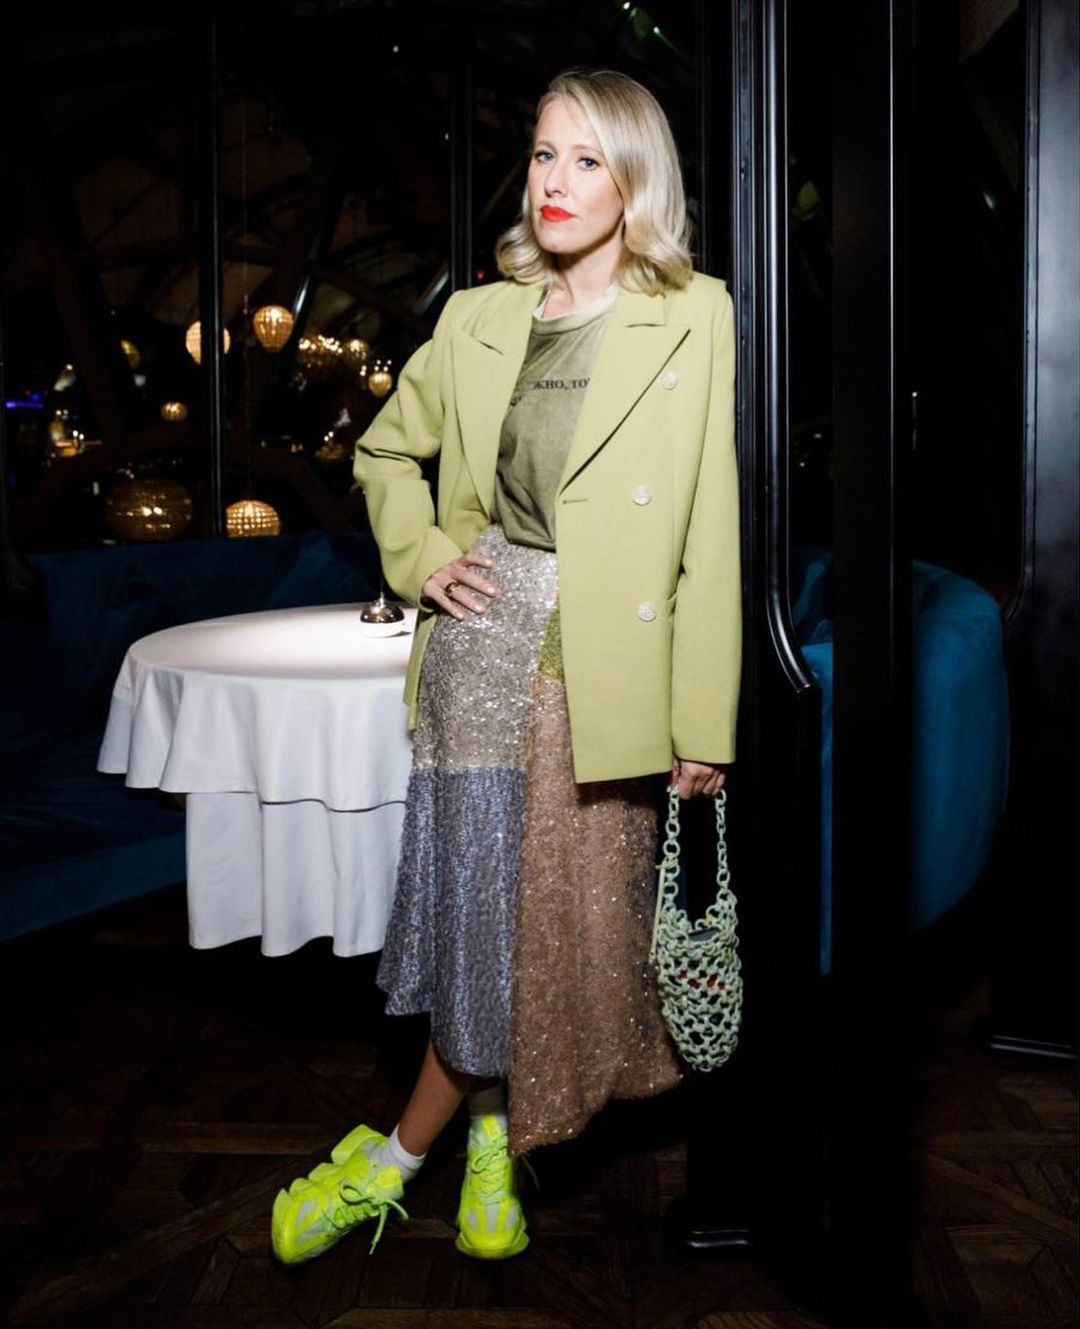 Rating of the day: Ksenia Sobchak's outfit and her acid-colored sneakers were criticized to smithereens